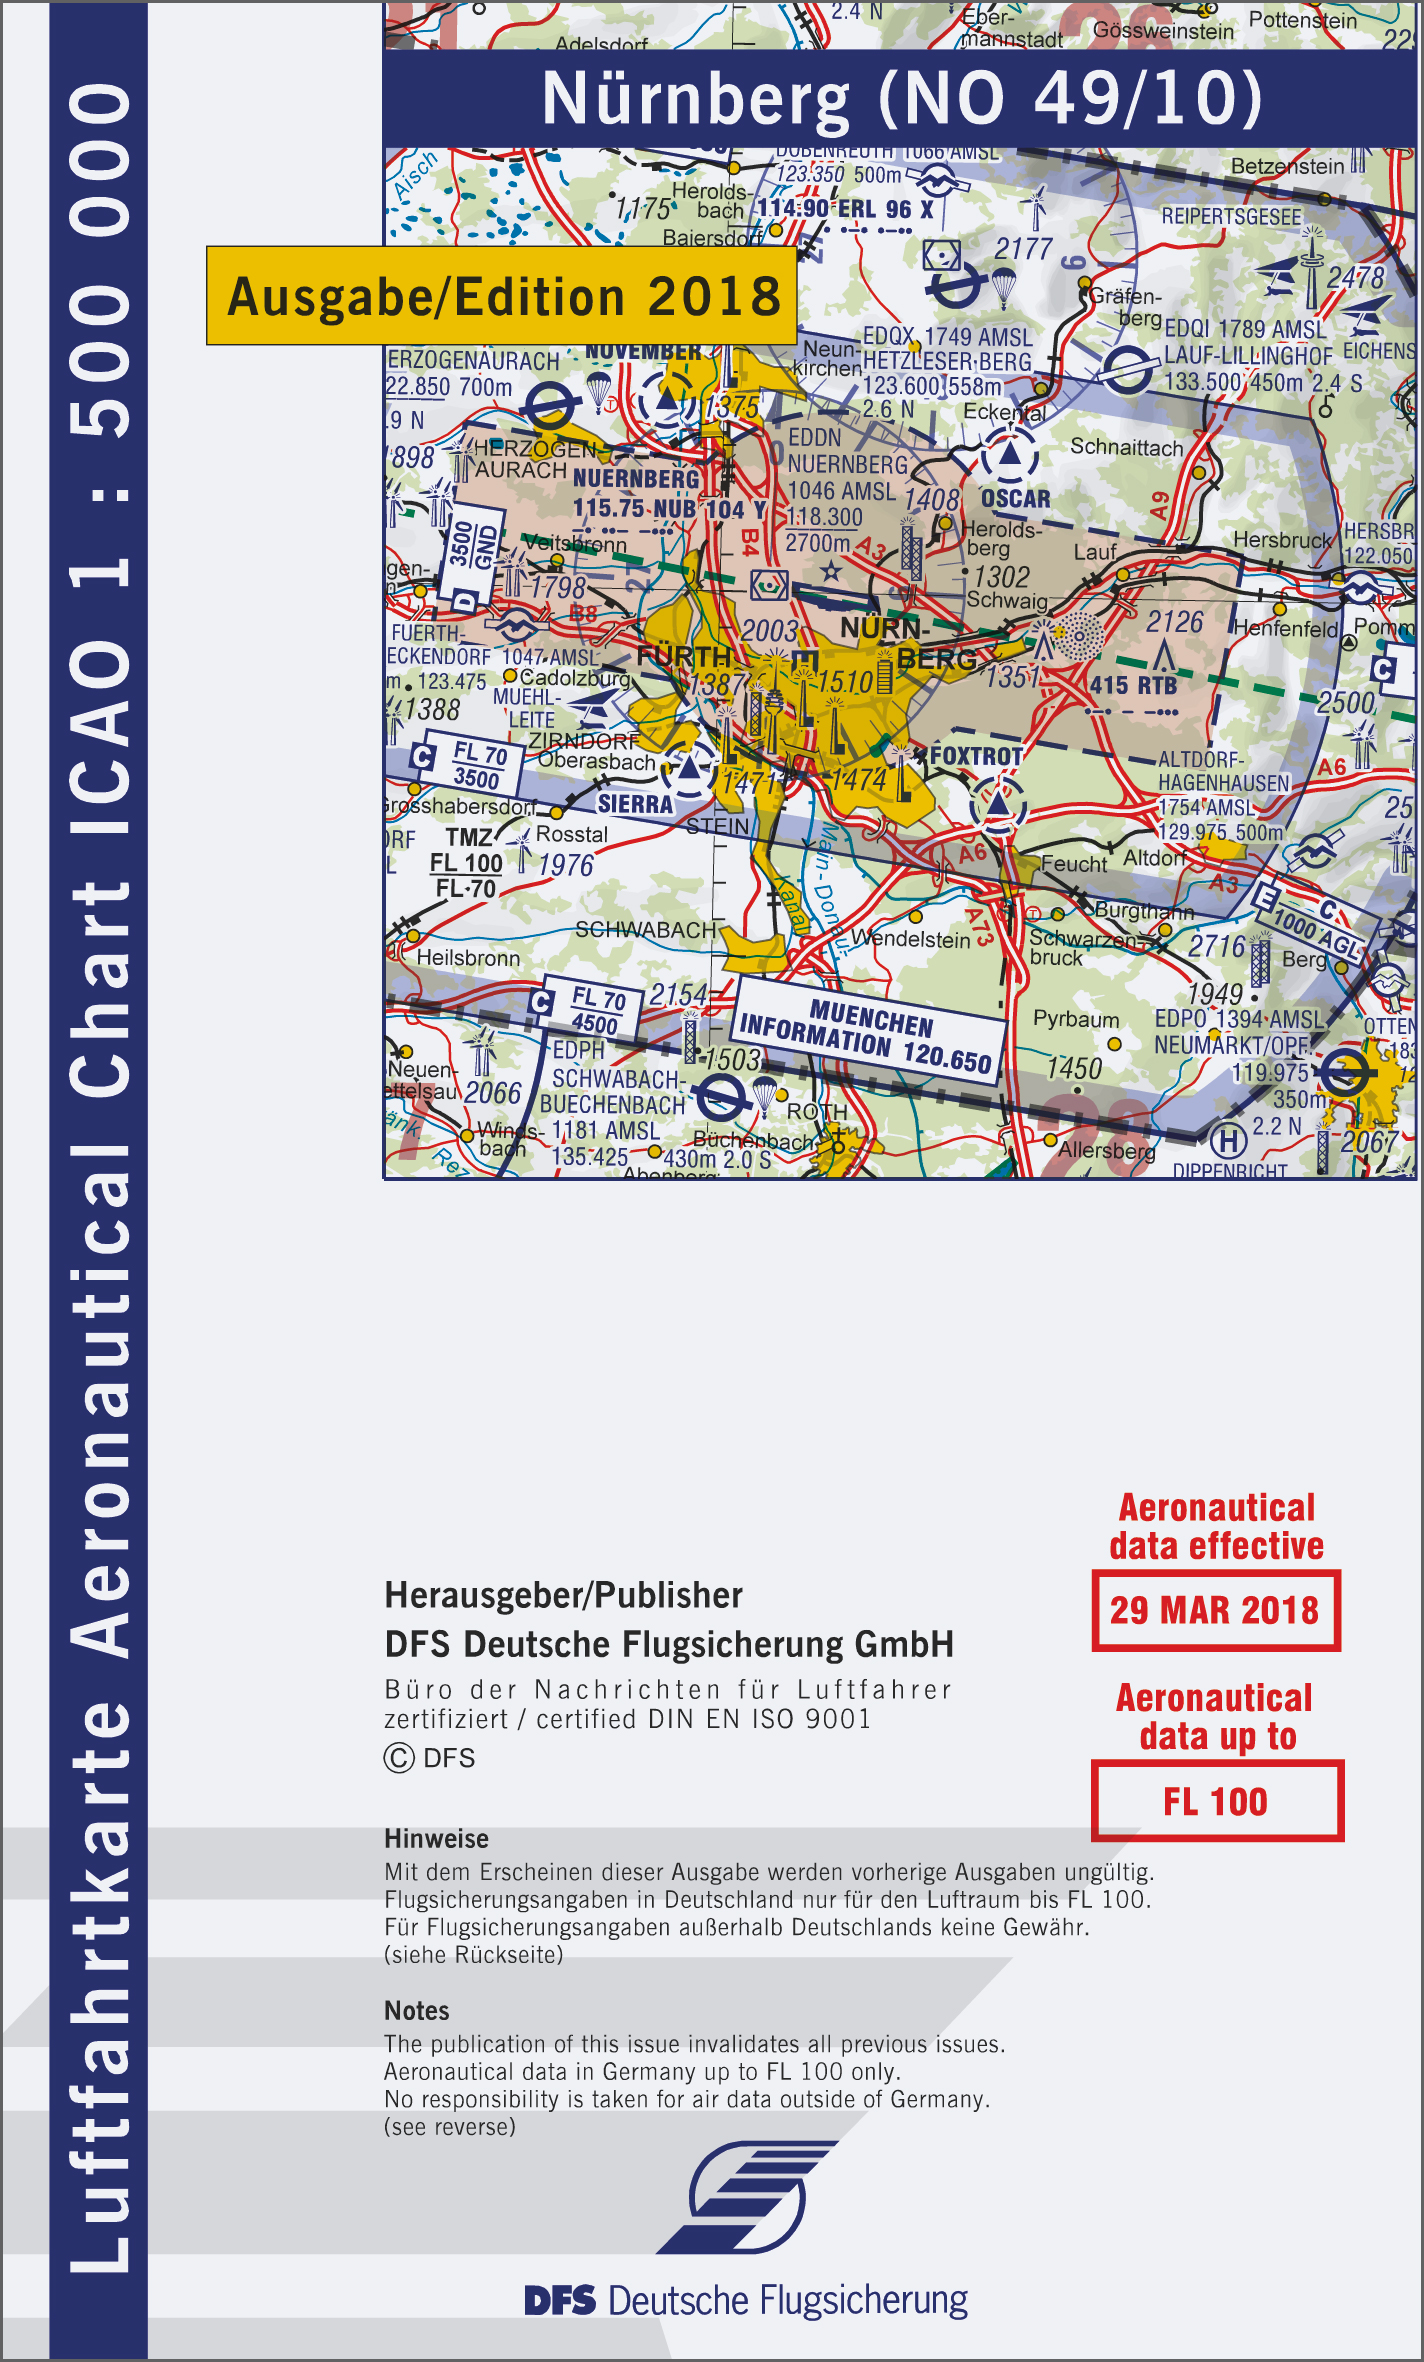 Ccc Icao Manual Of Instrument Flying Wiring Library